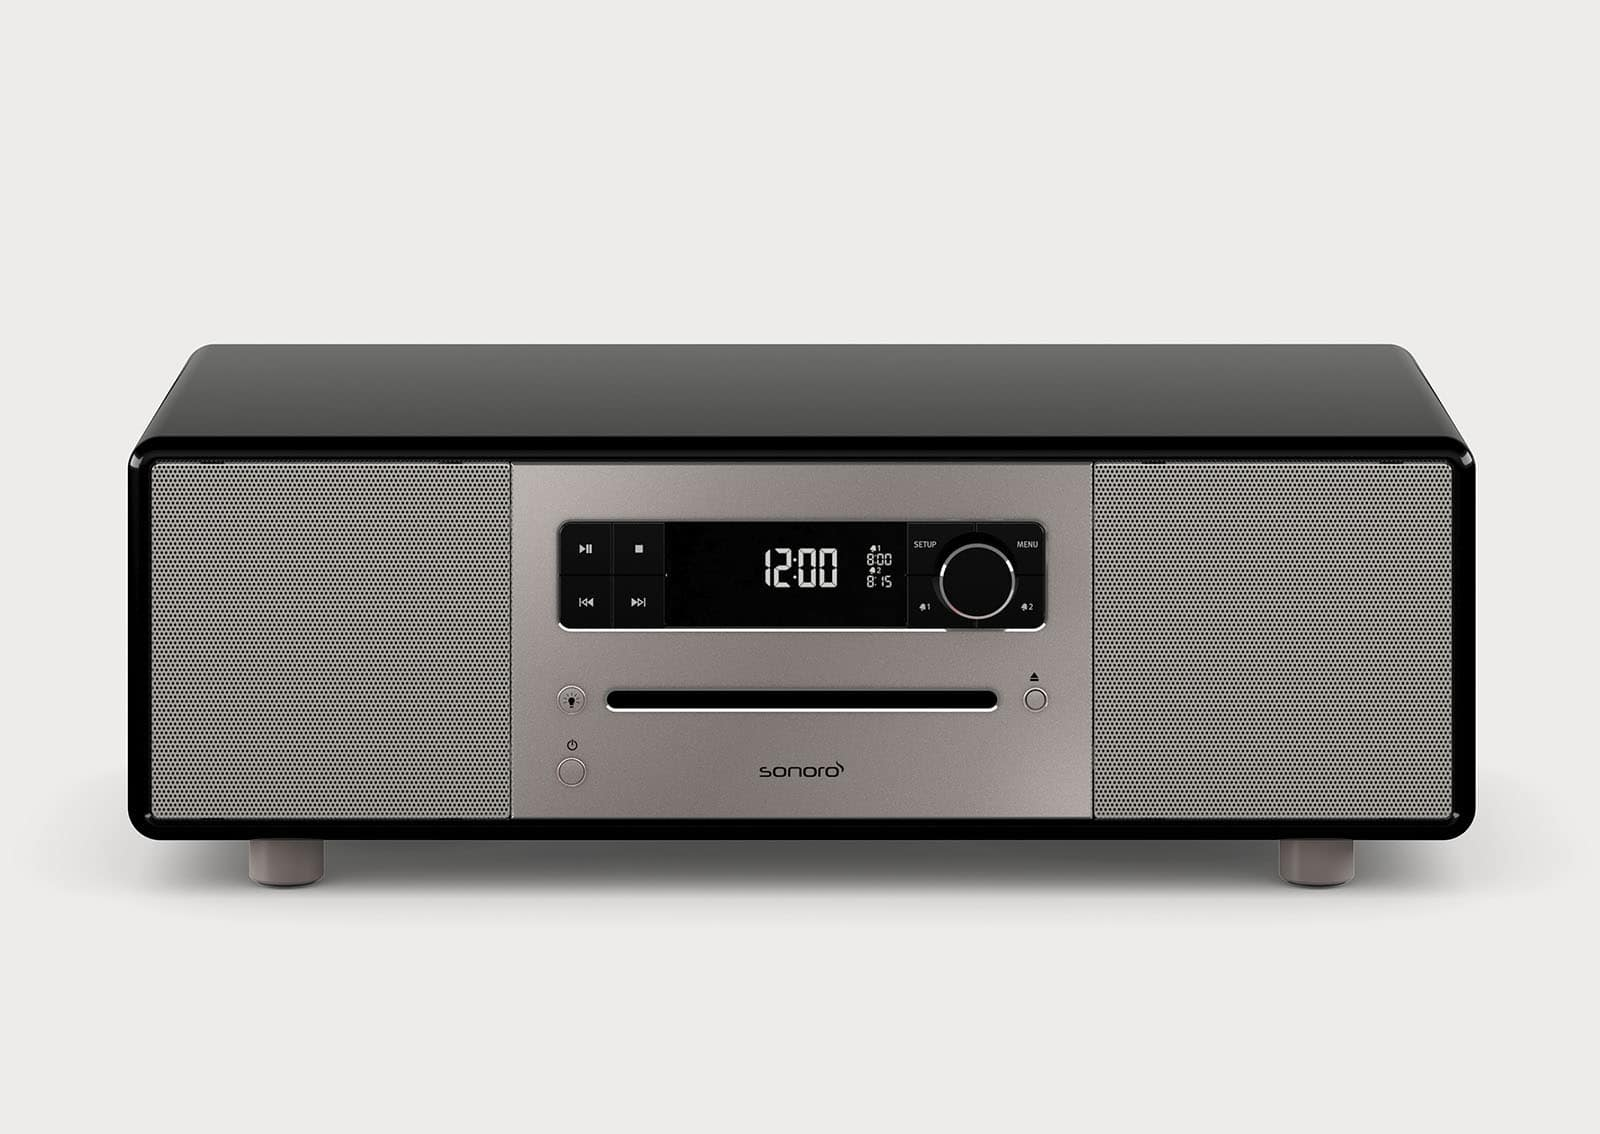 sonoro Lounge audio system